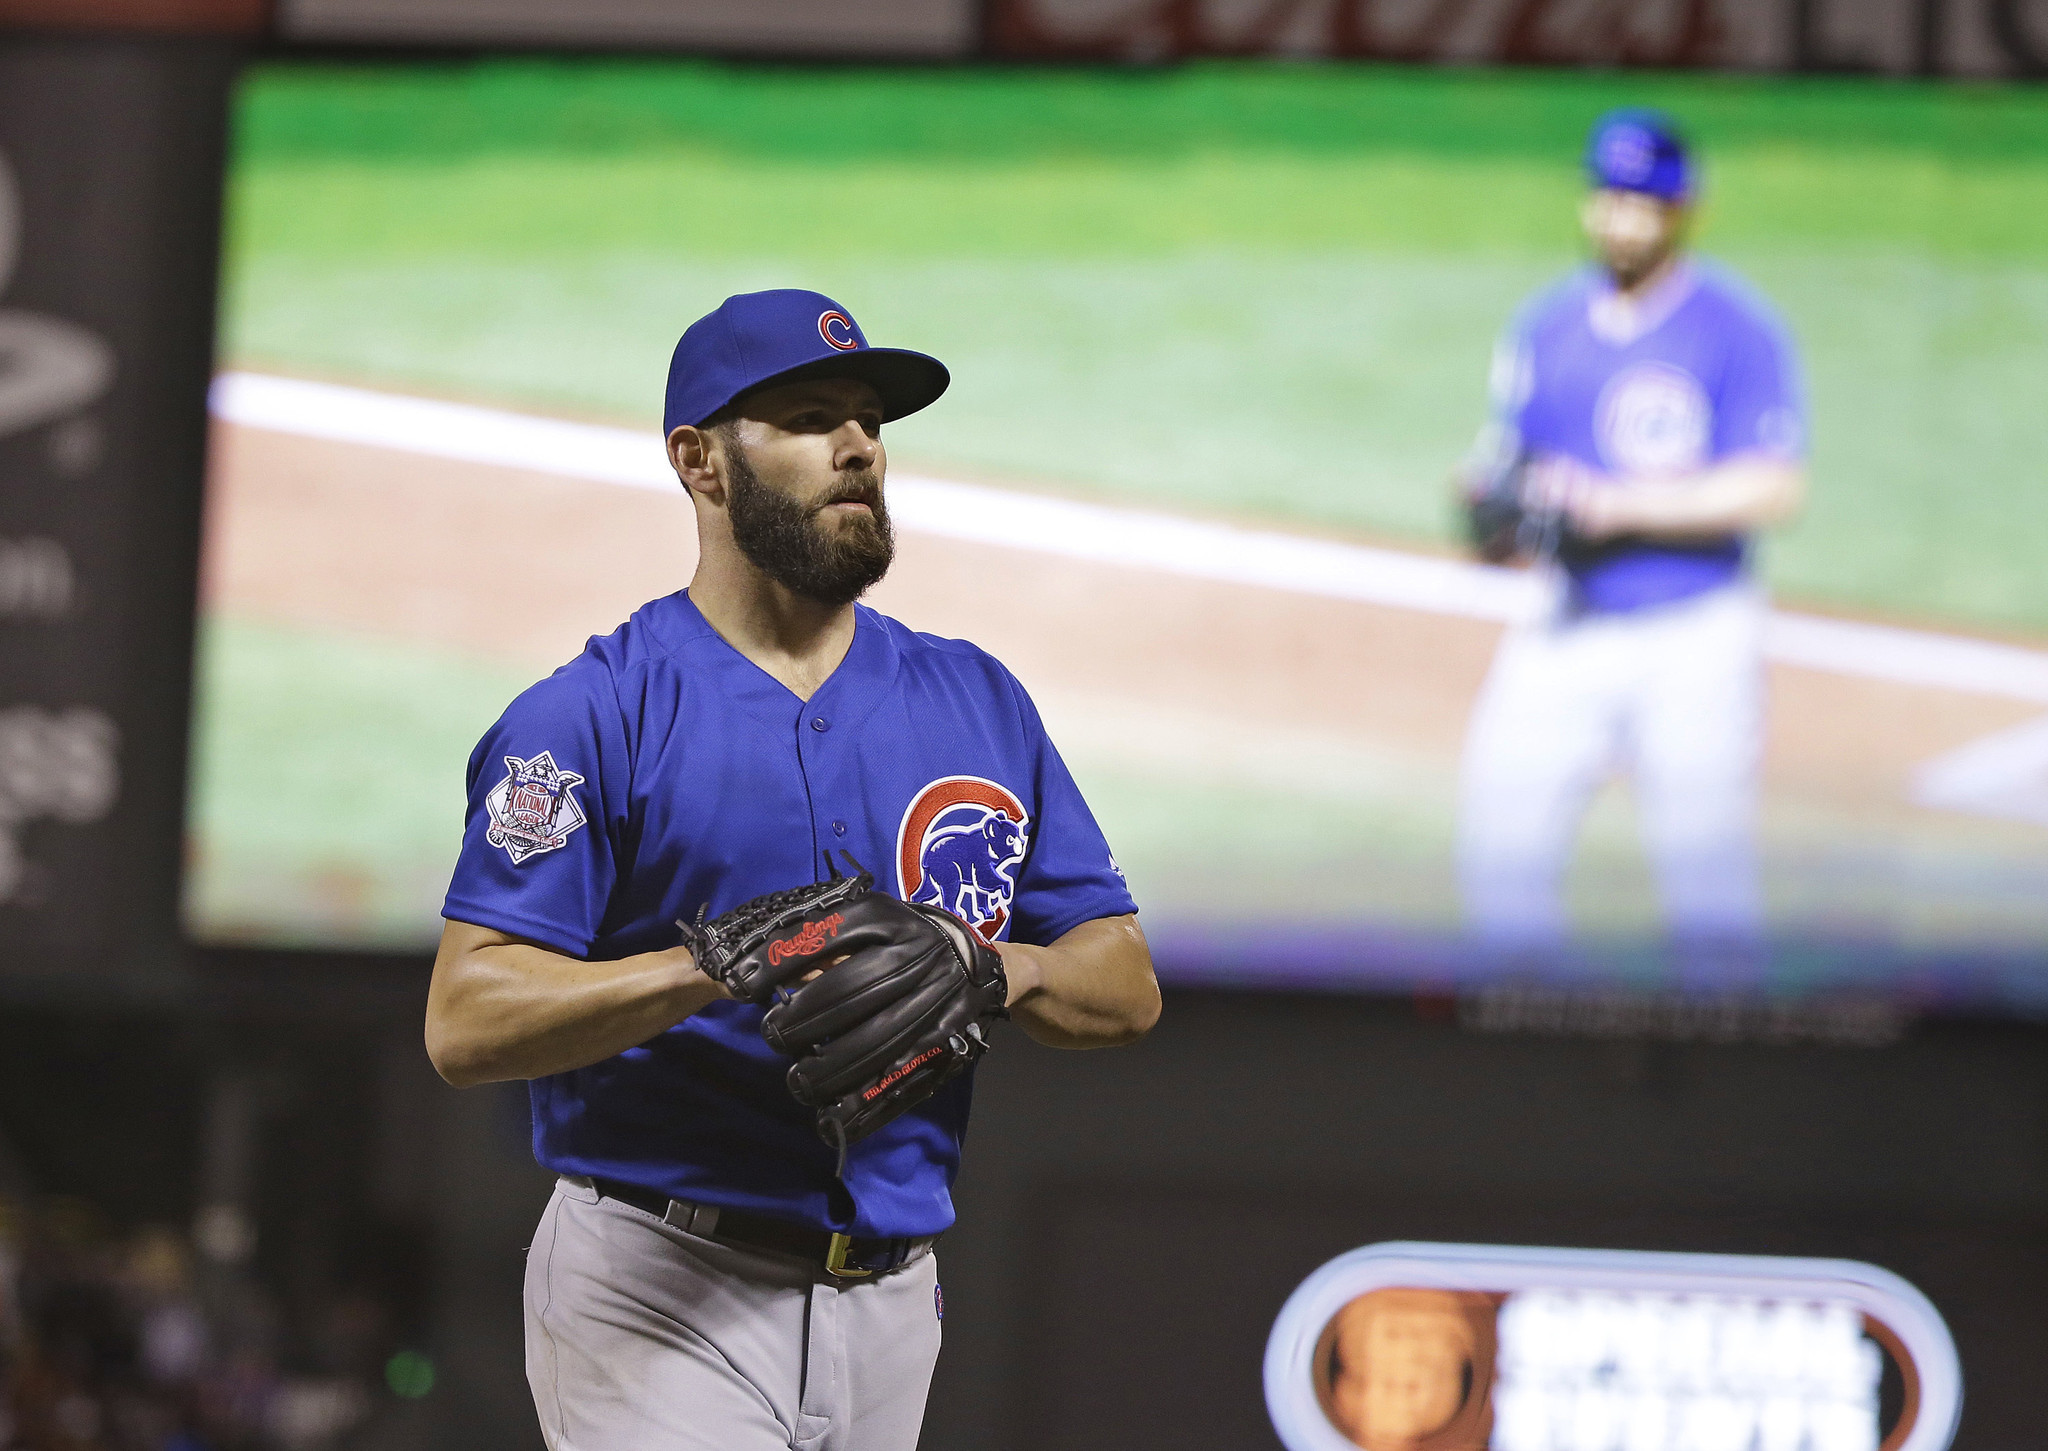 Ct-jake-arrieta-19-straight-wins-cubs-spt-0522-20160521